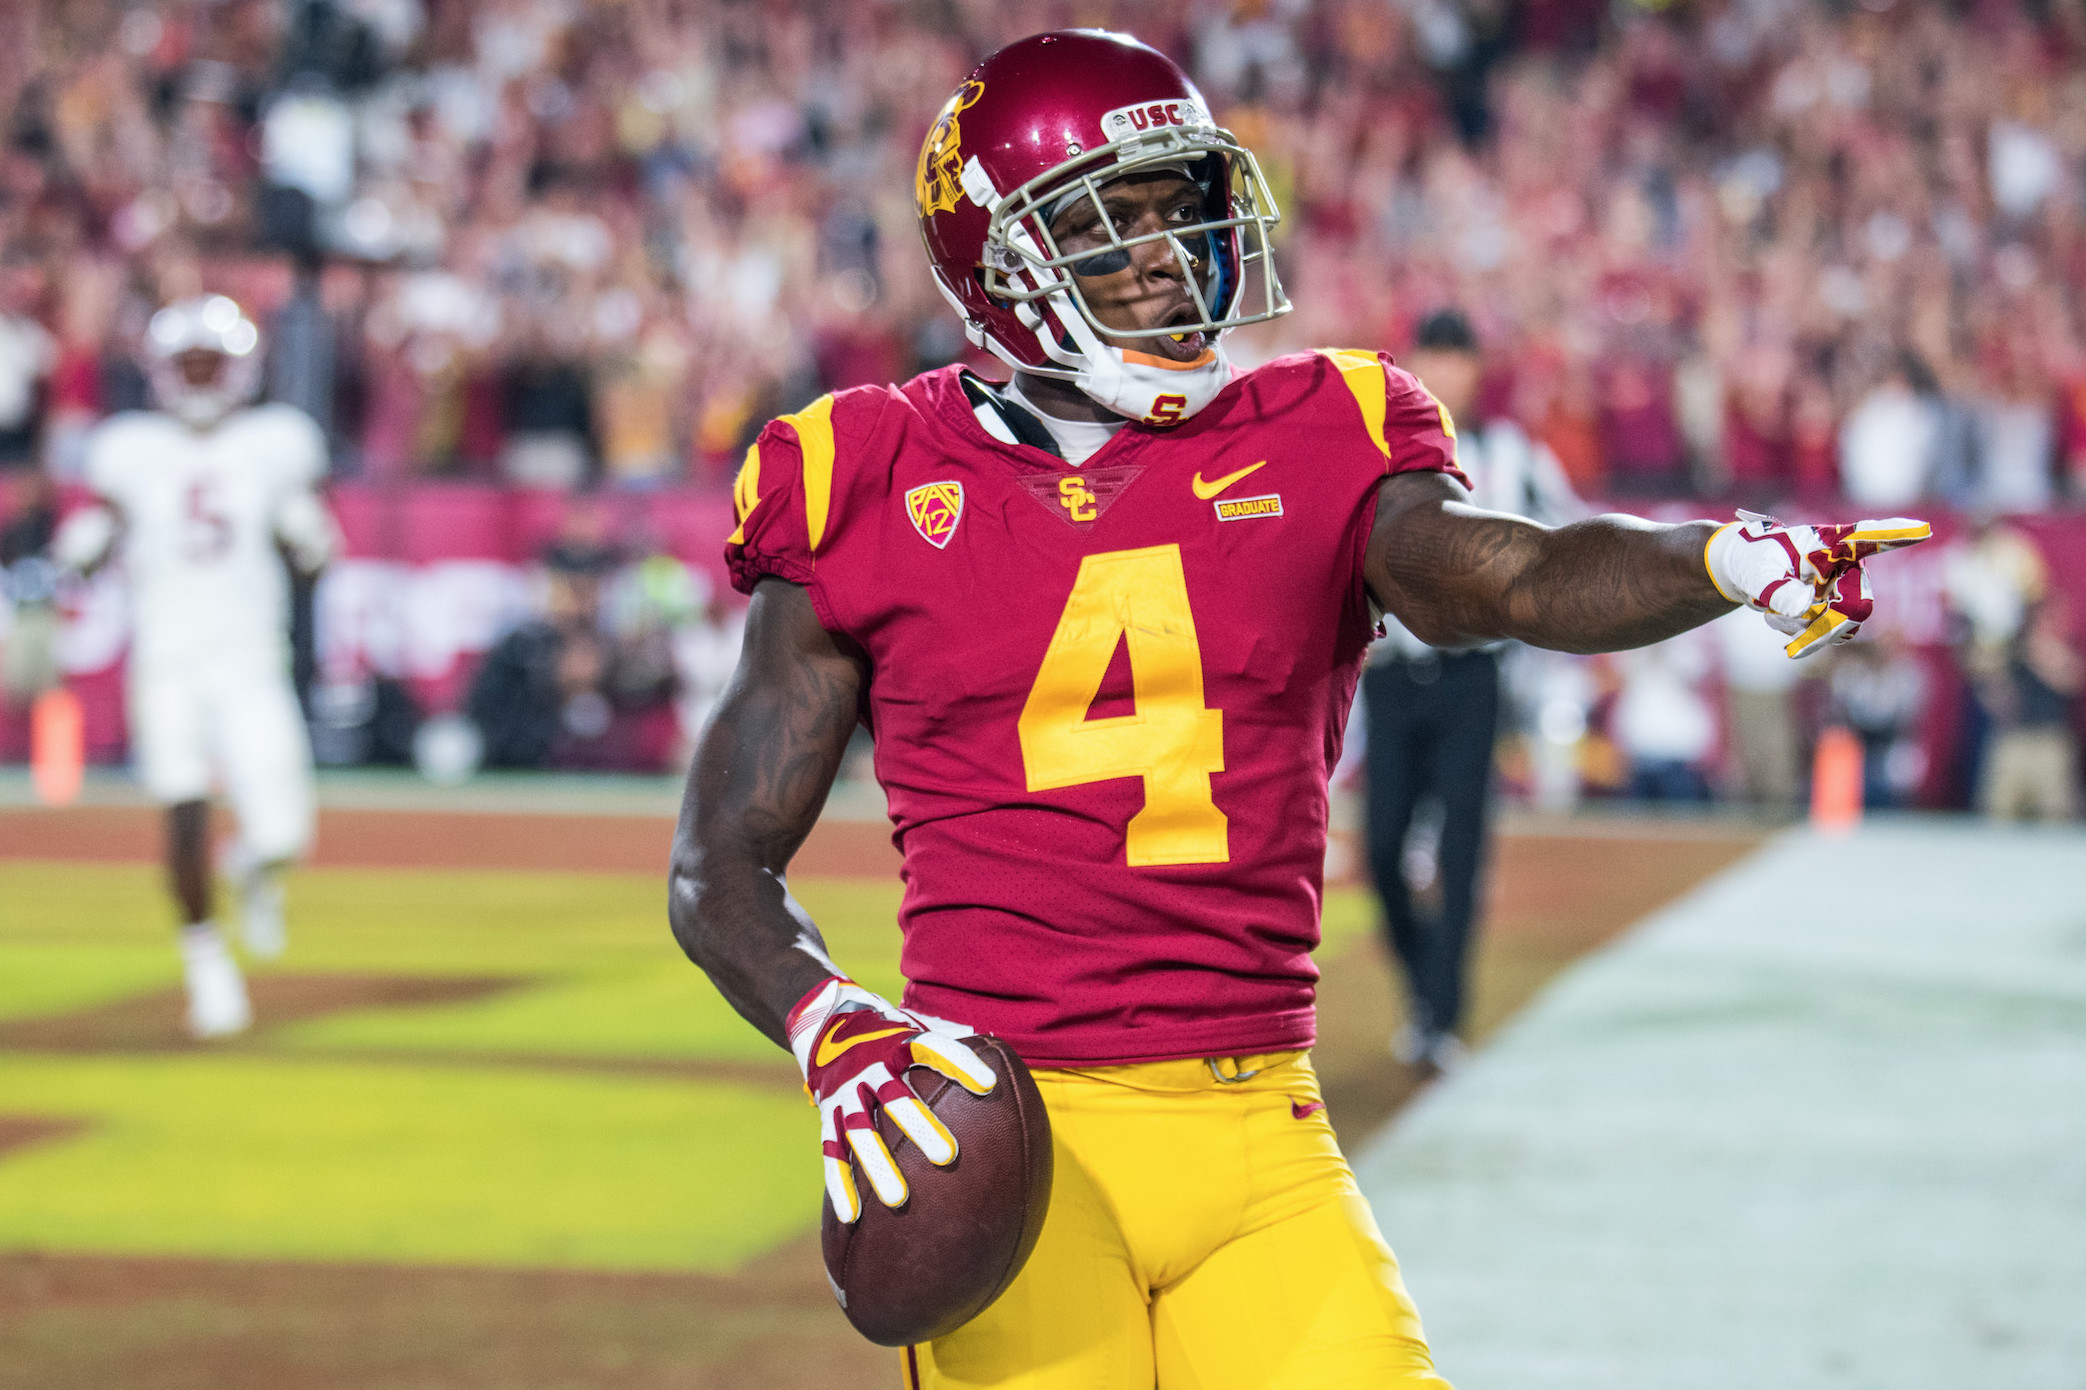 USC without TE Daniel Imatorbhebhe in Pac-12 opening win vs. Stanford